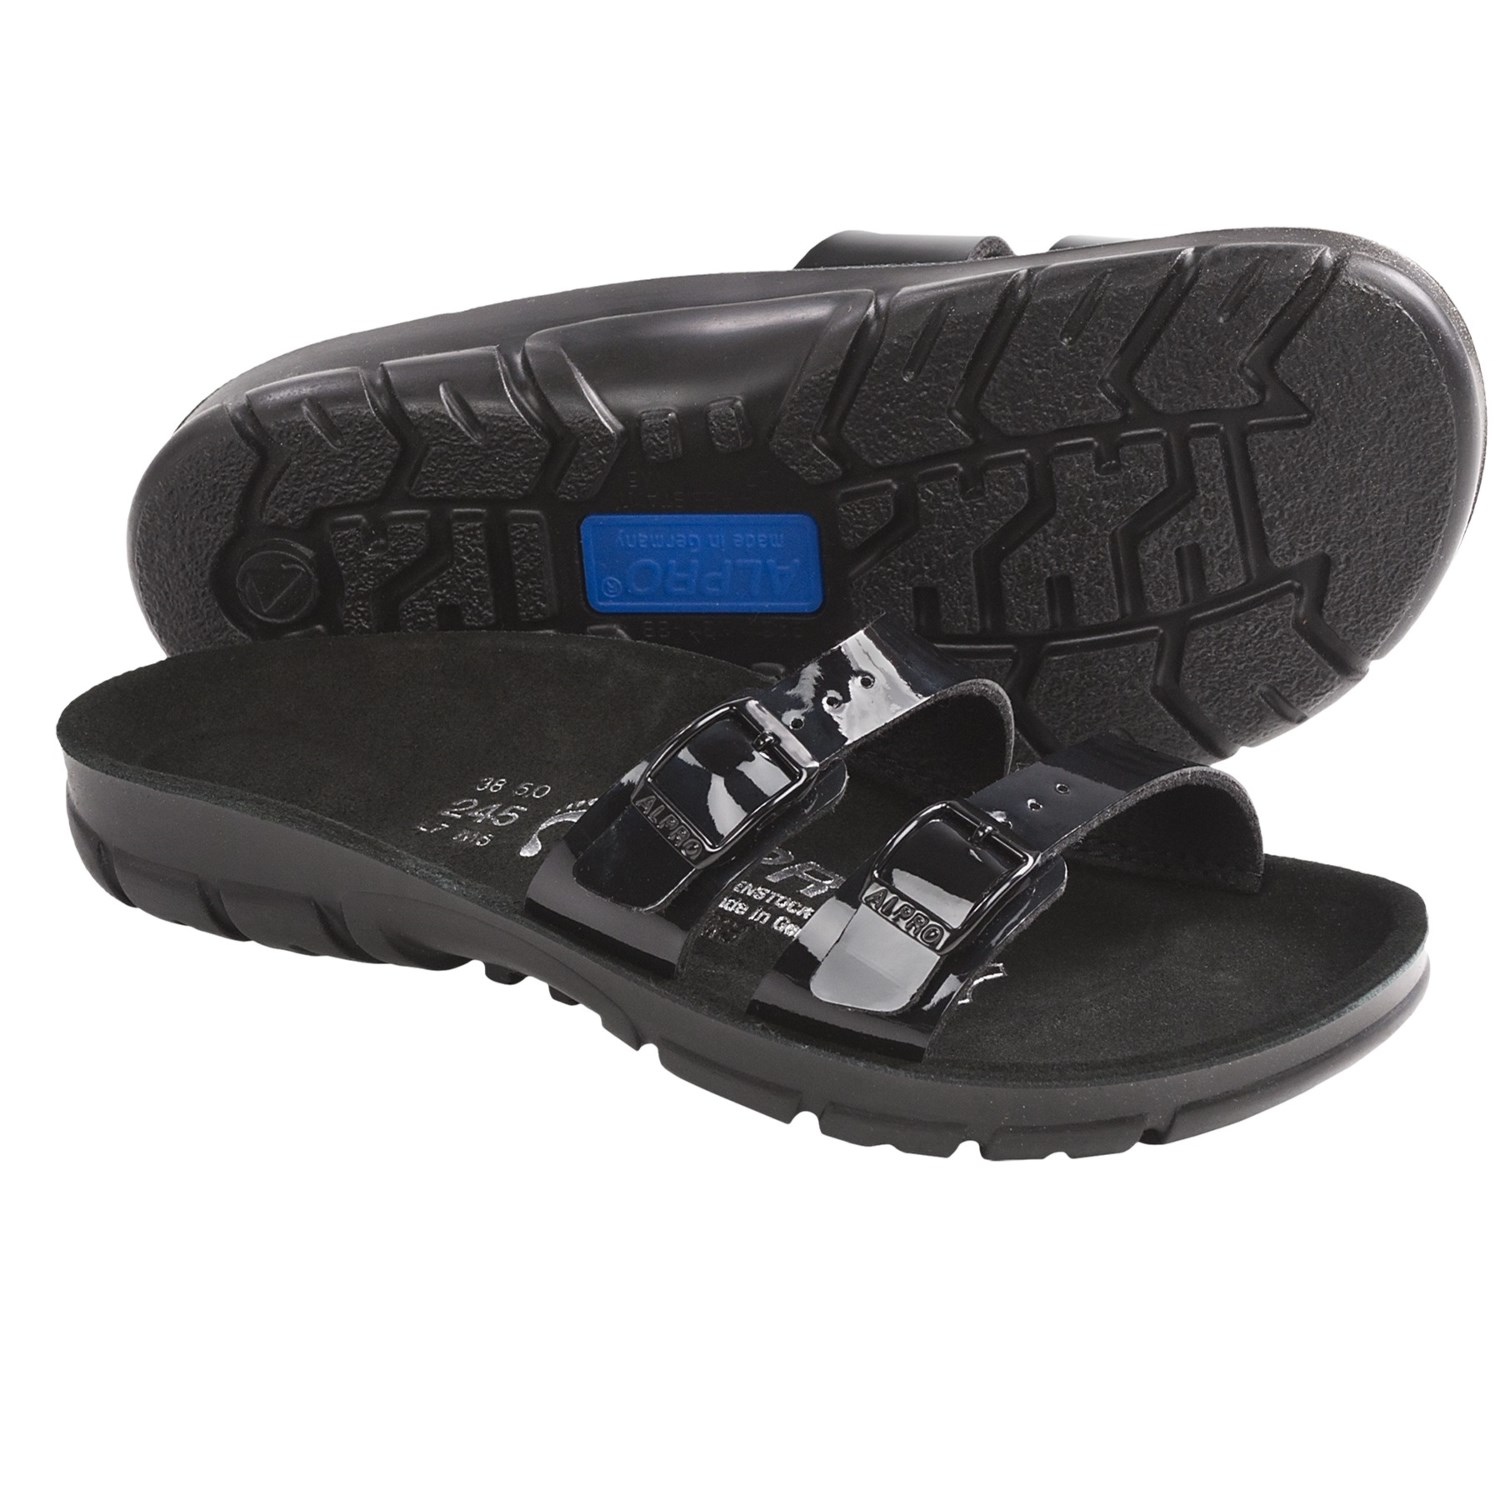 Birkenstock coupon code